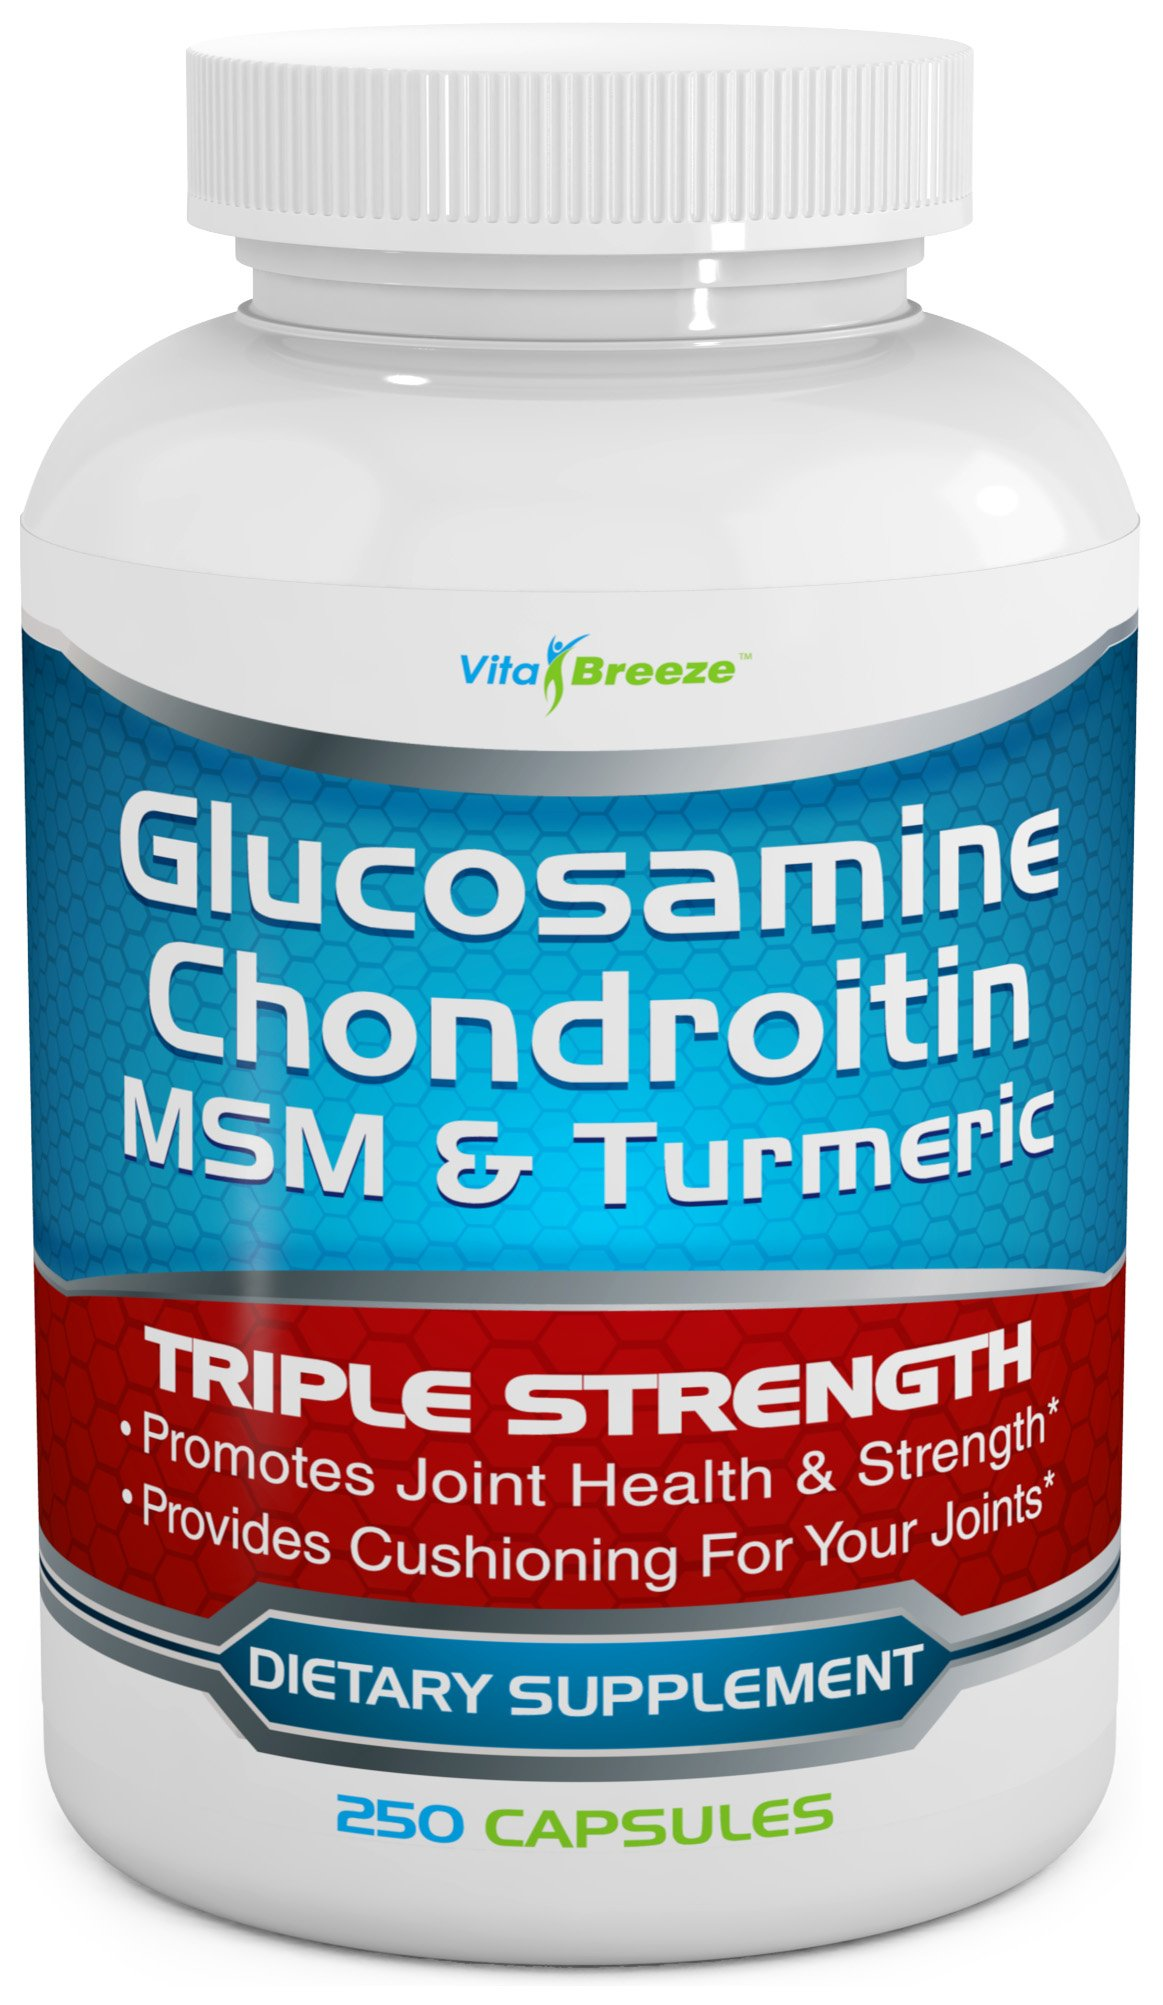 Glucosamine Chondroitin, MSM & Turmeric Dietary Supplement - 250 Capsules